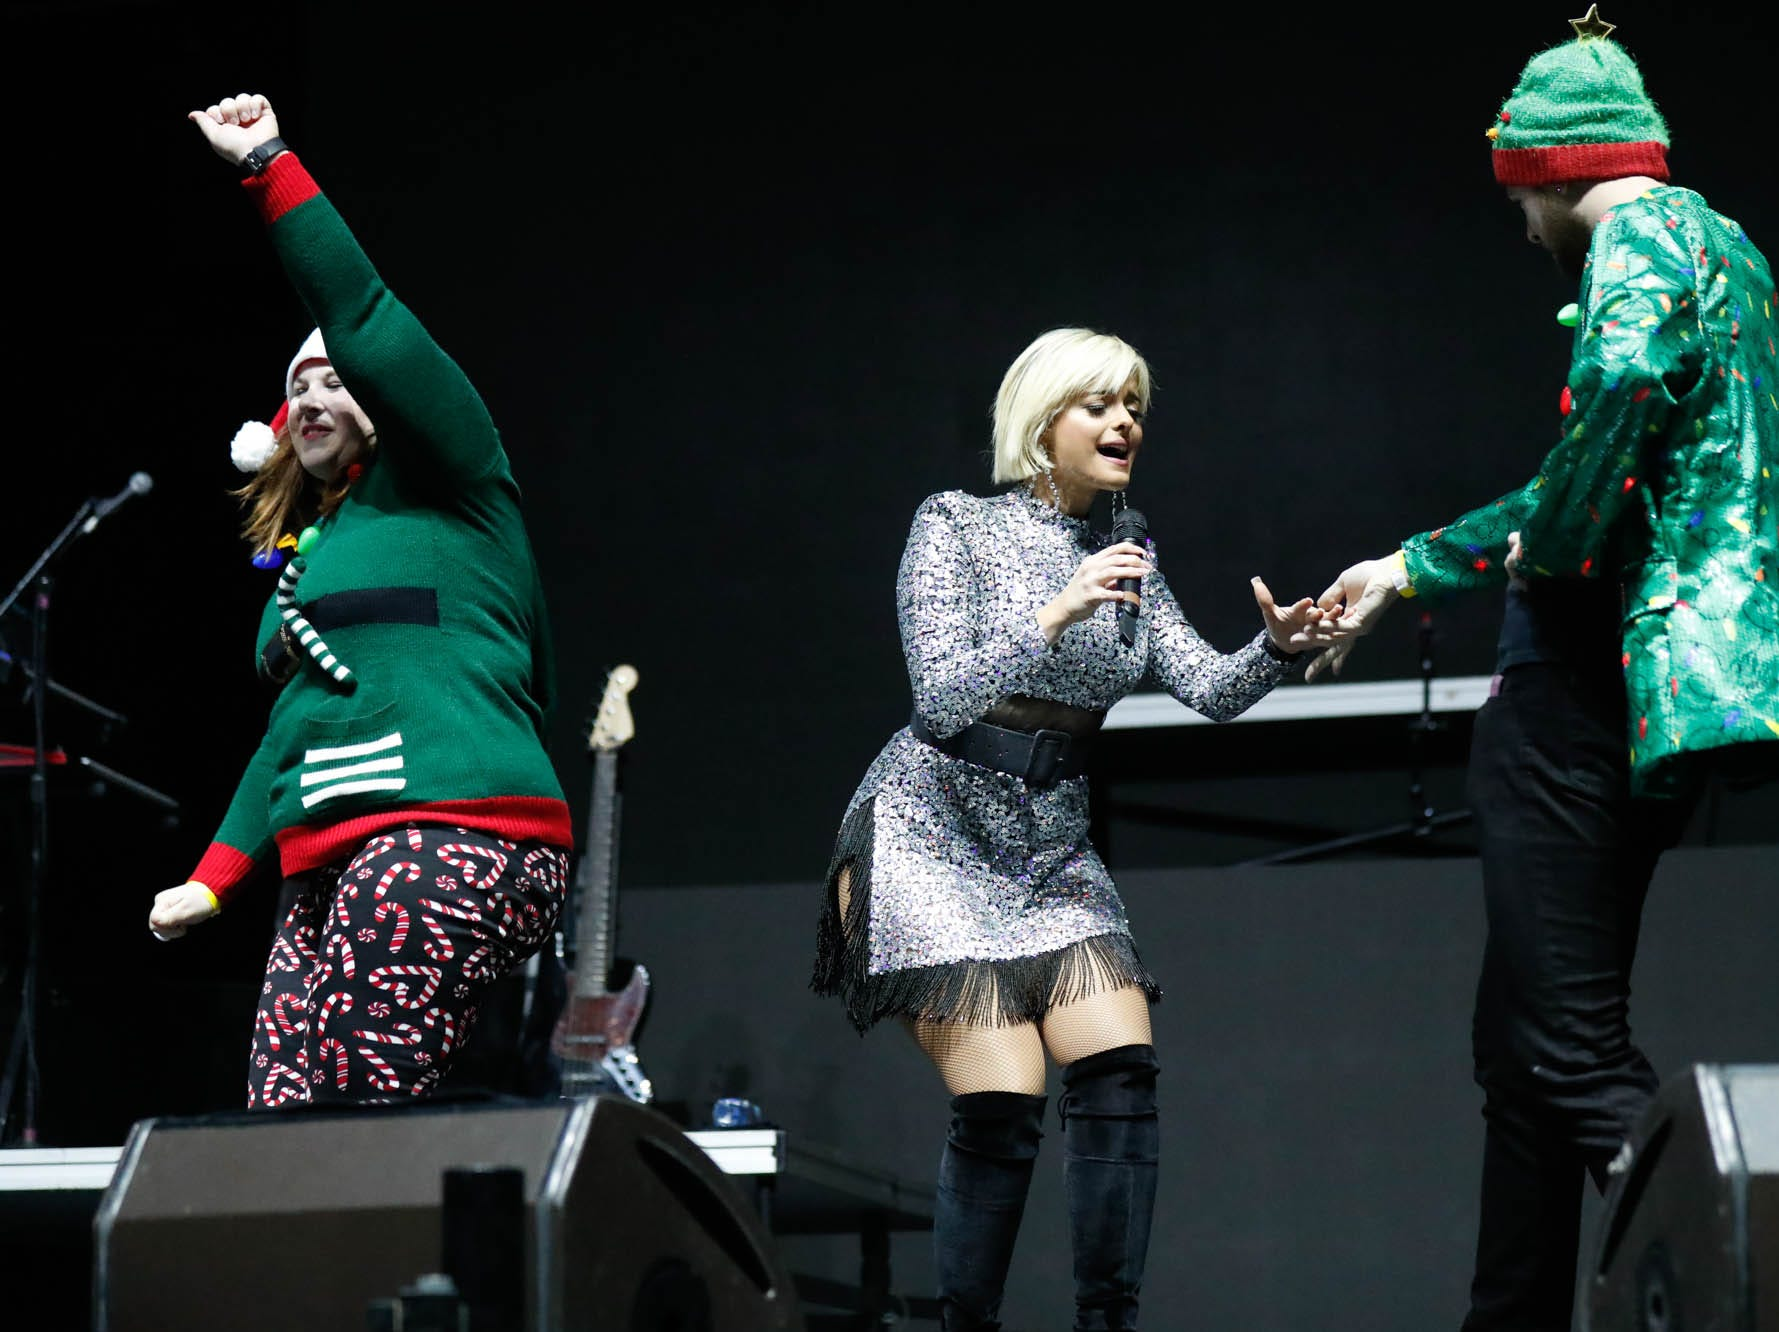 Fans were invited onstage for a dance off with Bebe Rexha during the 2018 Jingle Jam concert at Bankers Life Fieldhouse in Indianapolis on Tuesday, Dec. 12, 2018.